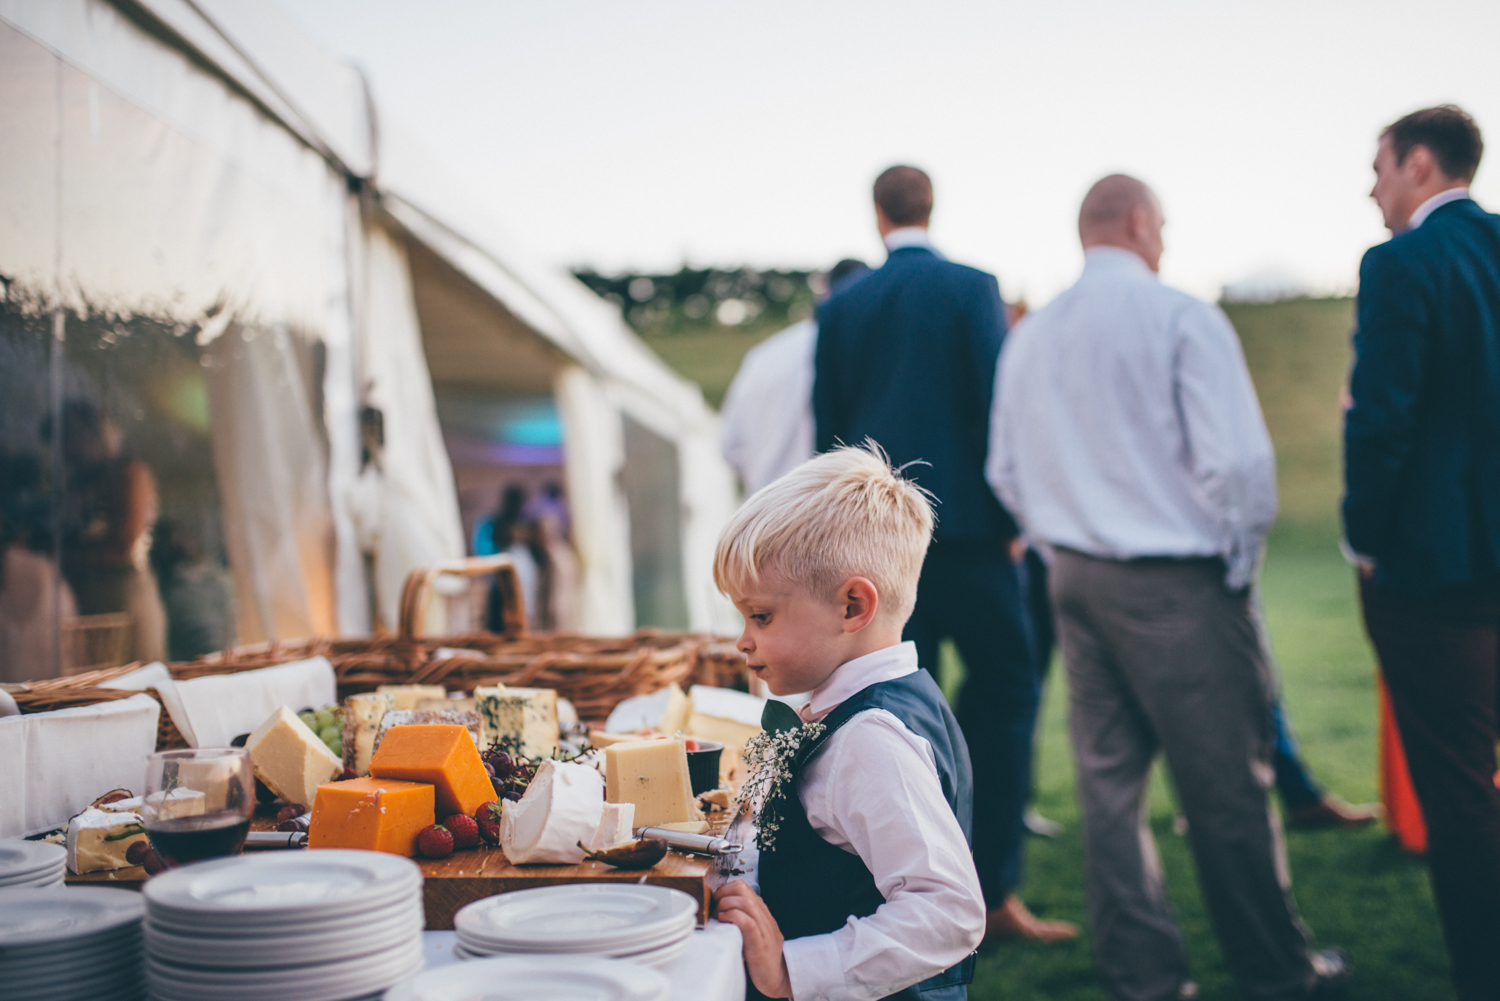 The pageboy stands at the cheese table whilst the adults ejoy the wedding reception at Delamere in Cheshire.